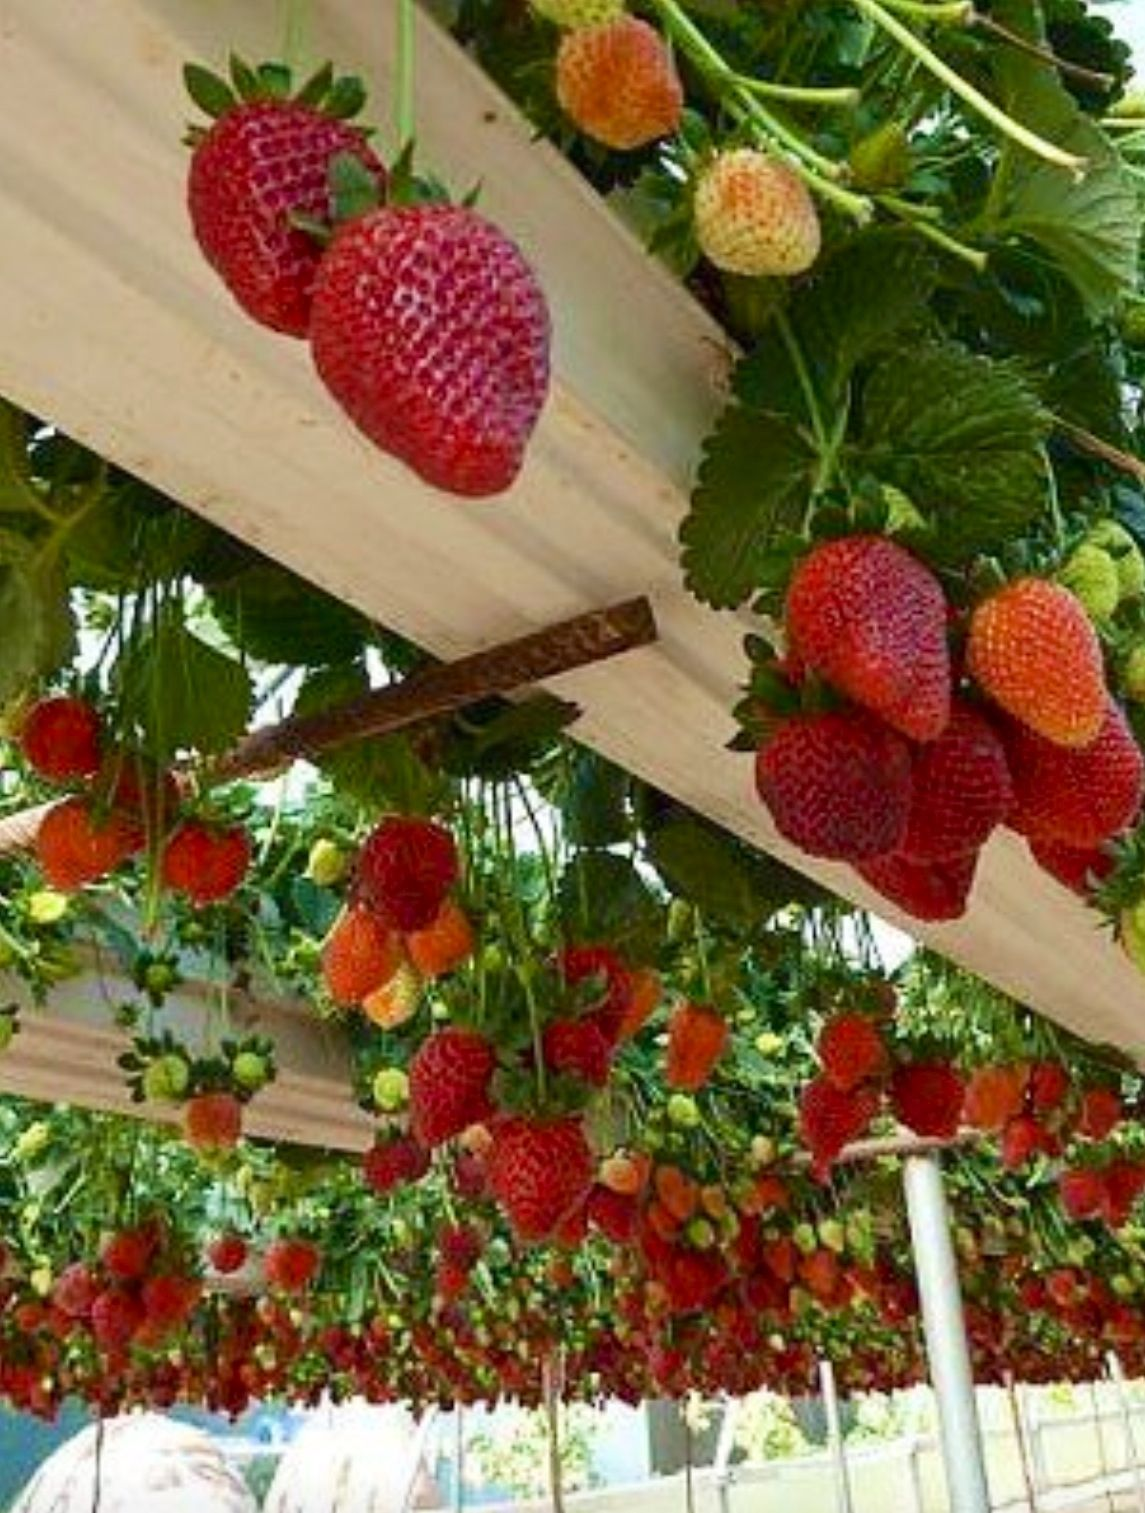 Growing strawberries in gutters diy idea - Anyone Can Make These 10 Beautiful And Useful Diy Accessories For A Garden Outdoors 5